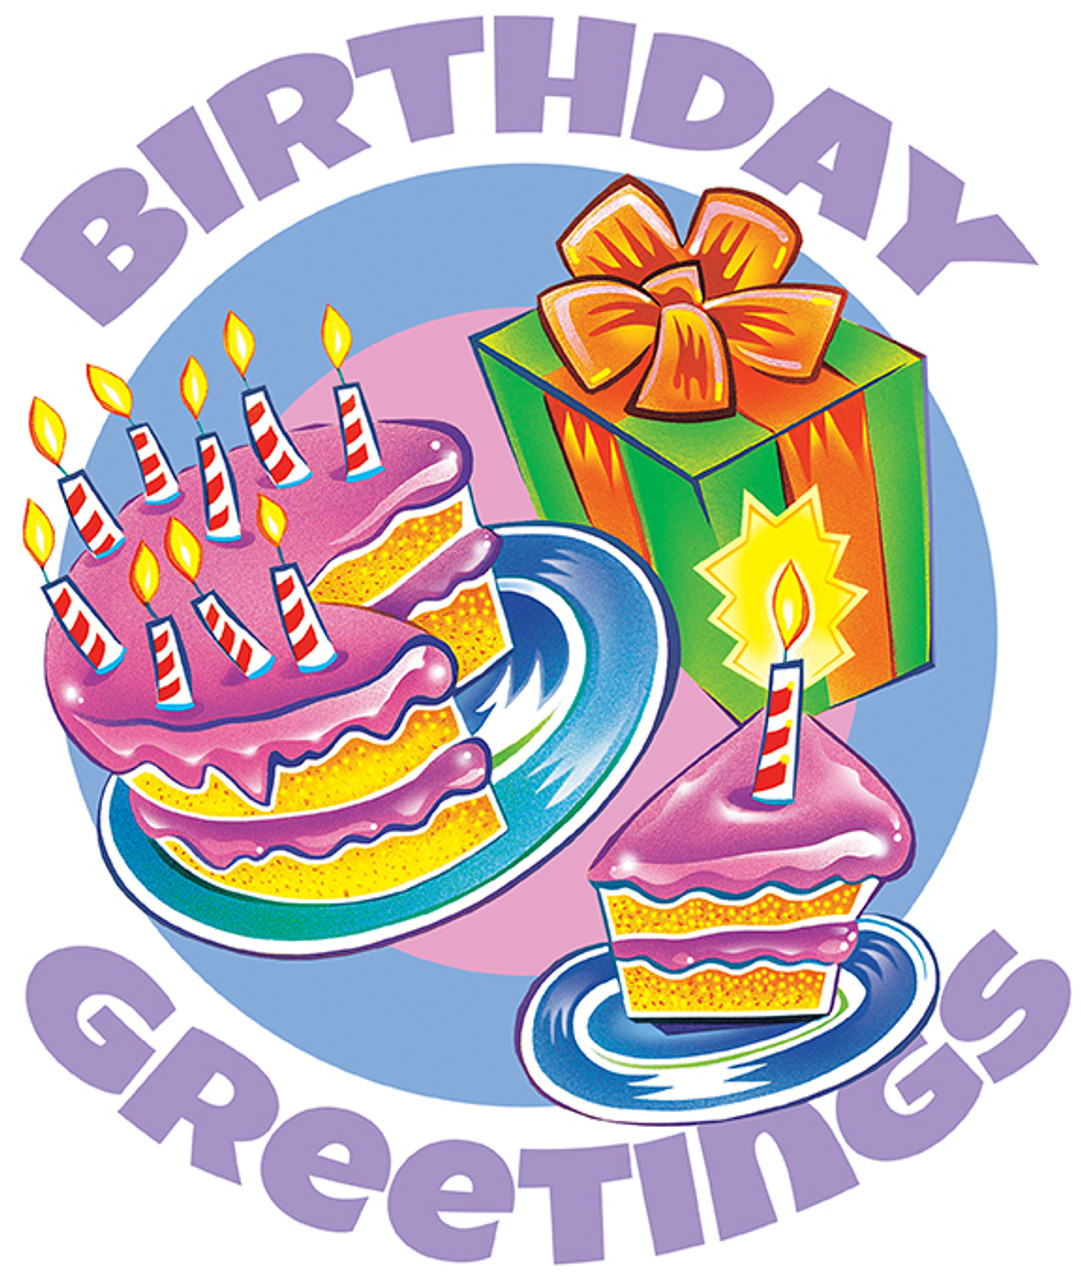 01DEAL 50 Birthday General Designs 6 Cards Per Design 300 Cards